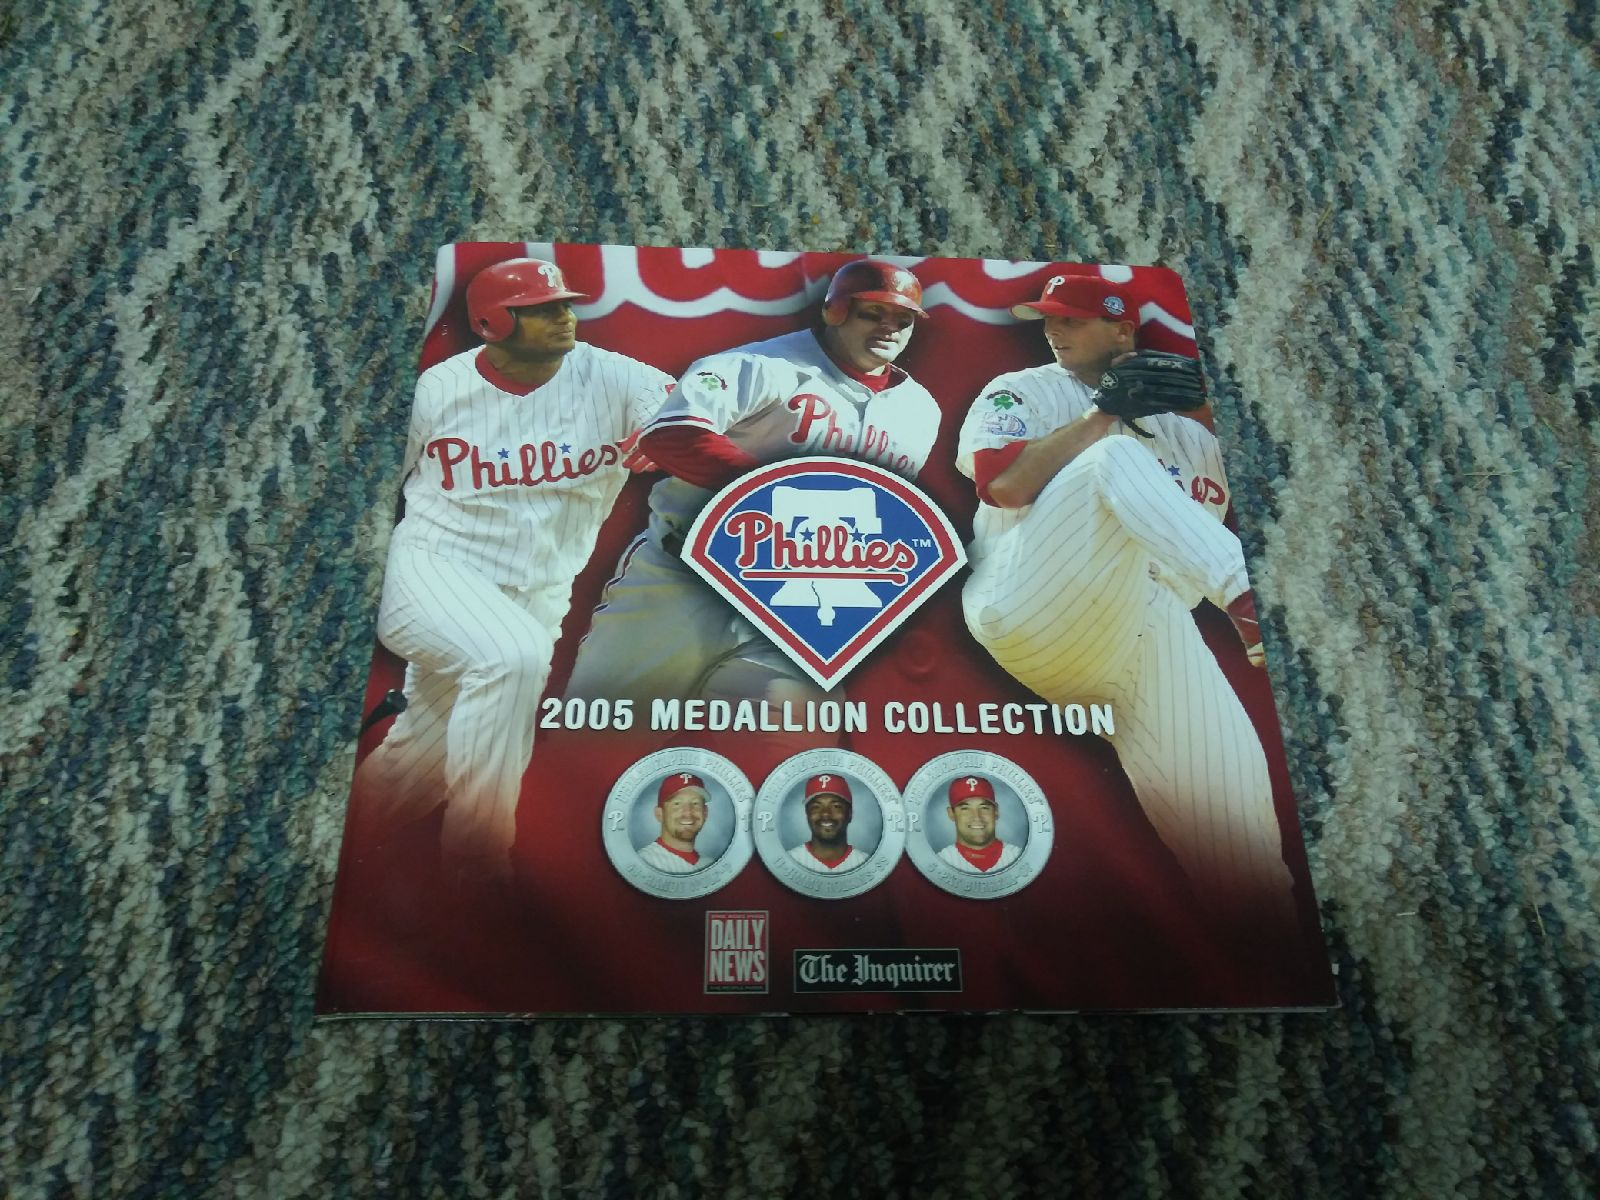 2005 phillies medallion collection